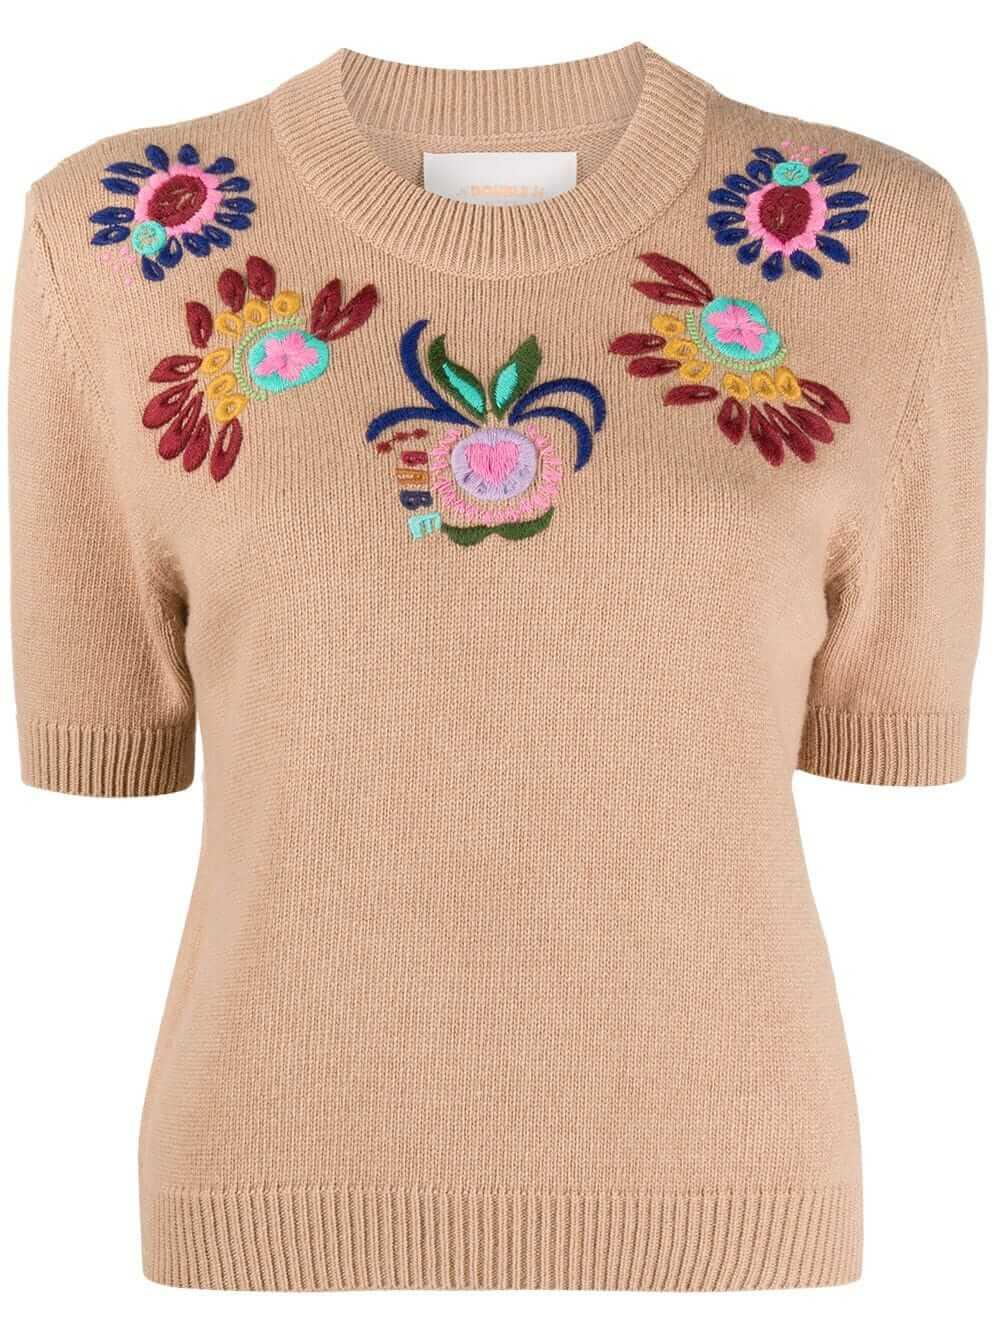 Cropped Embroidered Sweater Item # PUL0035-KNI027